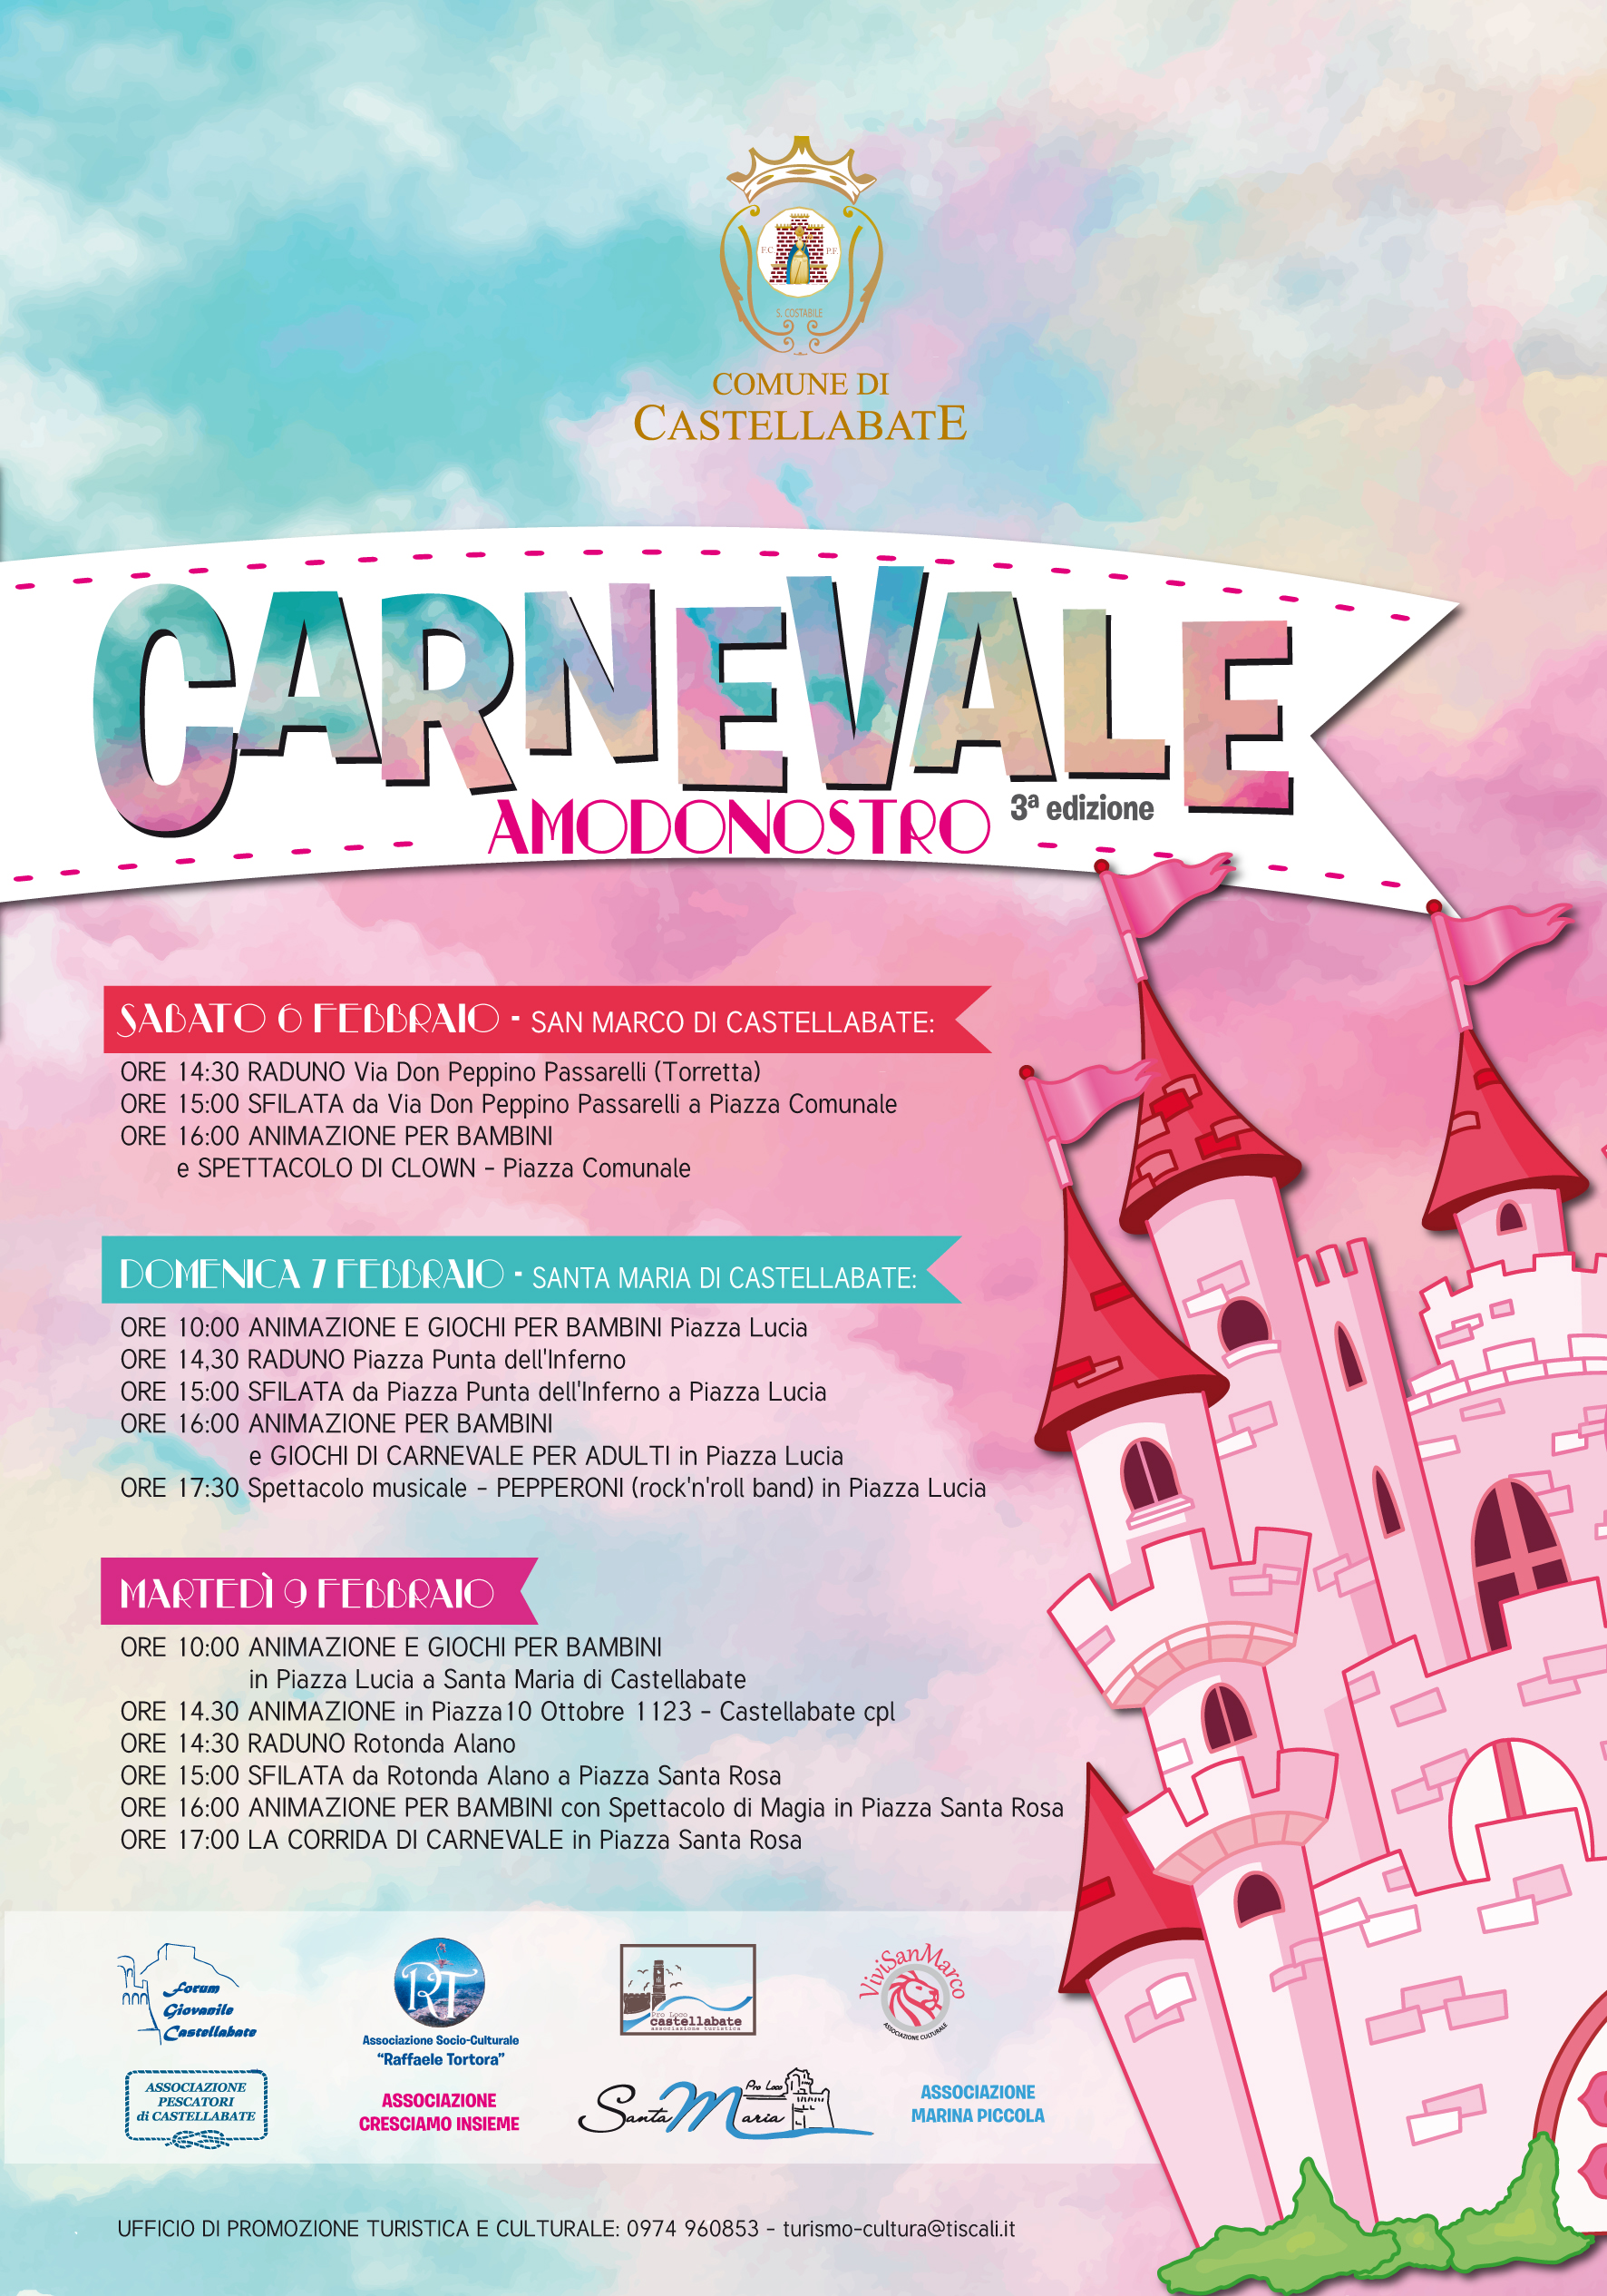 Castellabate - Carnevale 2016